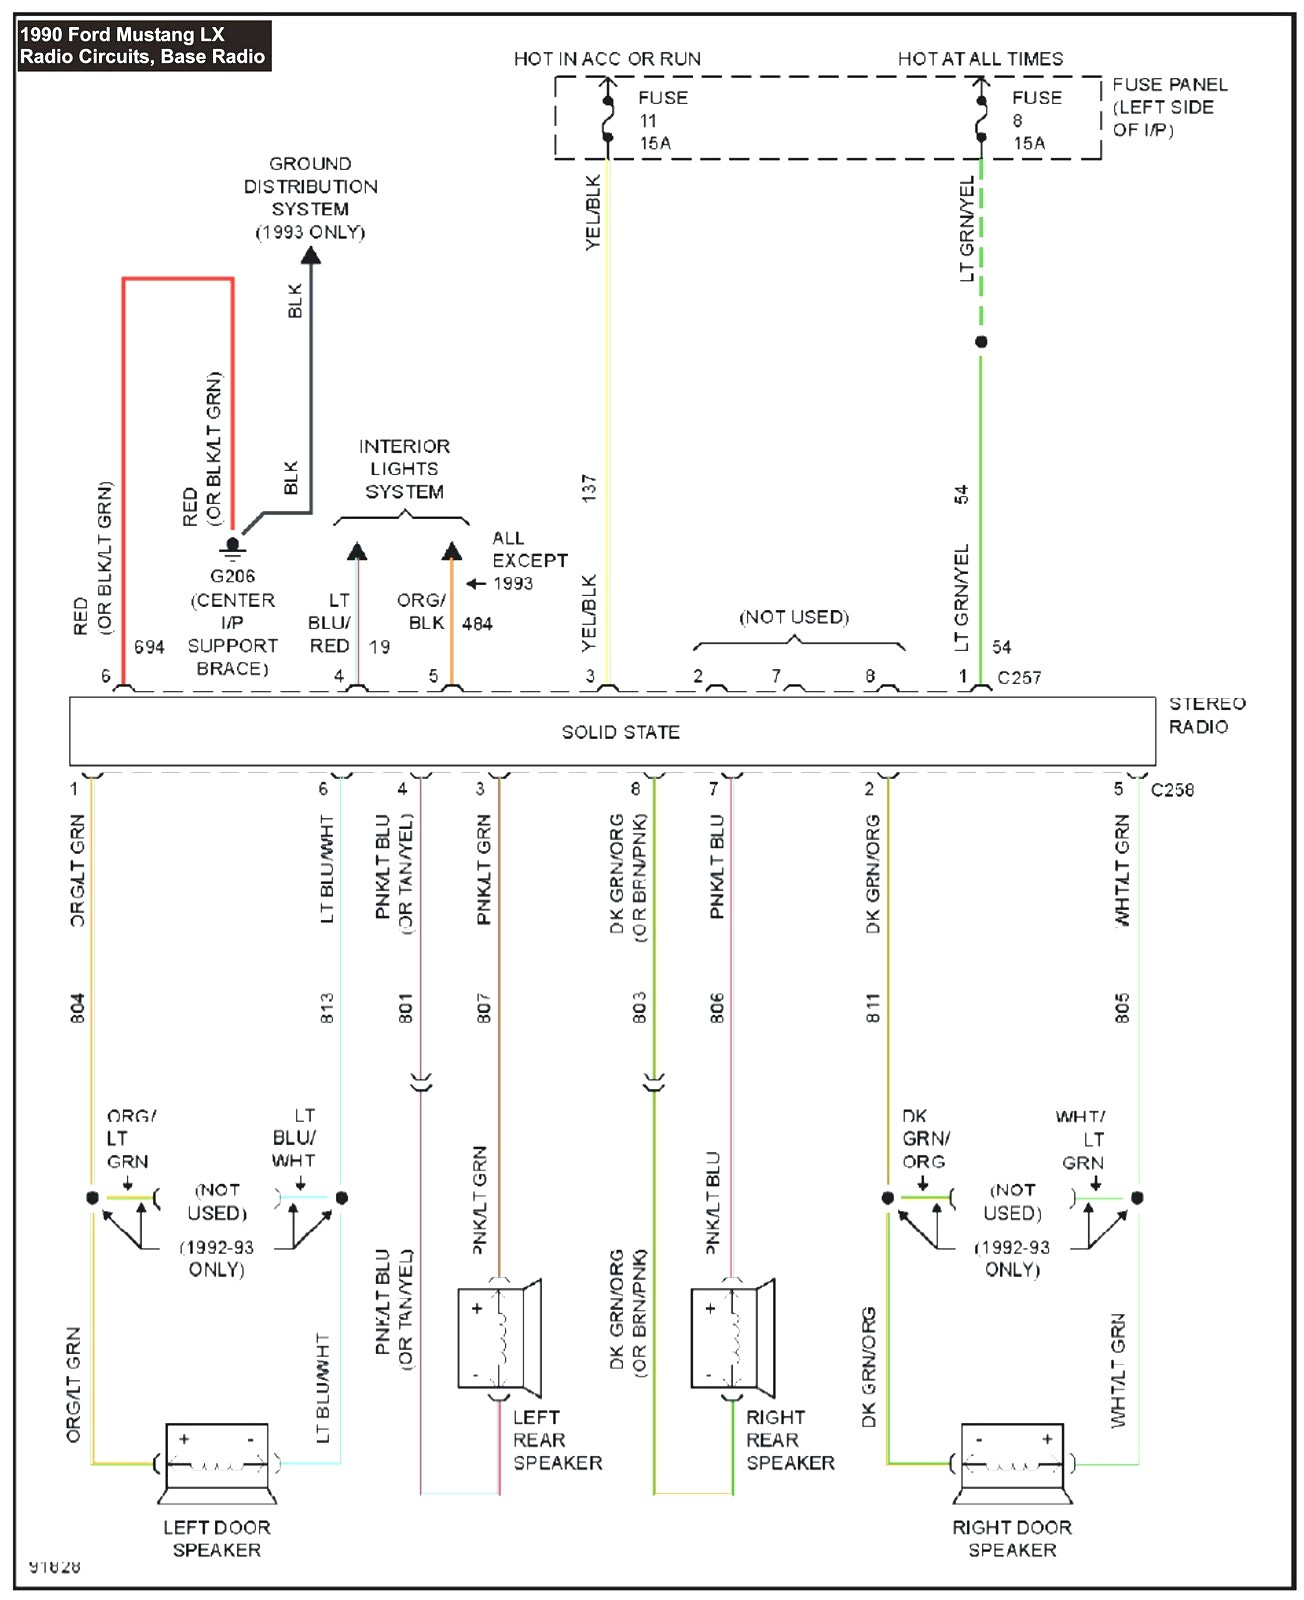 1990 Mustang Wiring Diagram My Ktm Duke 125 Fresh 2007 Ford 78 In With 93